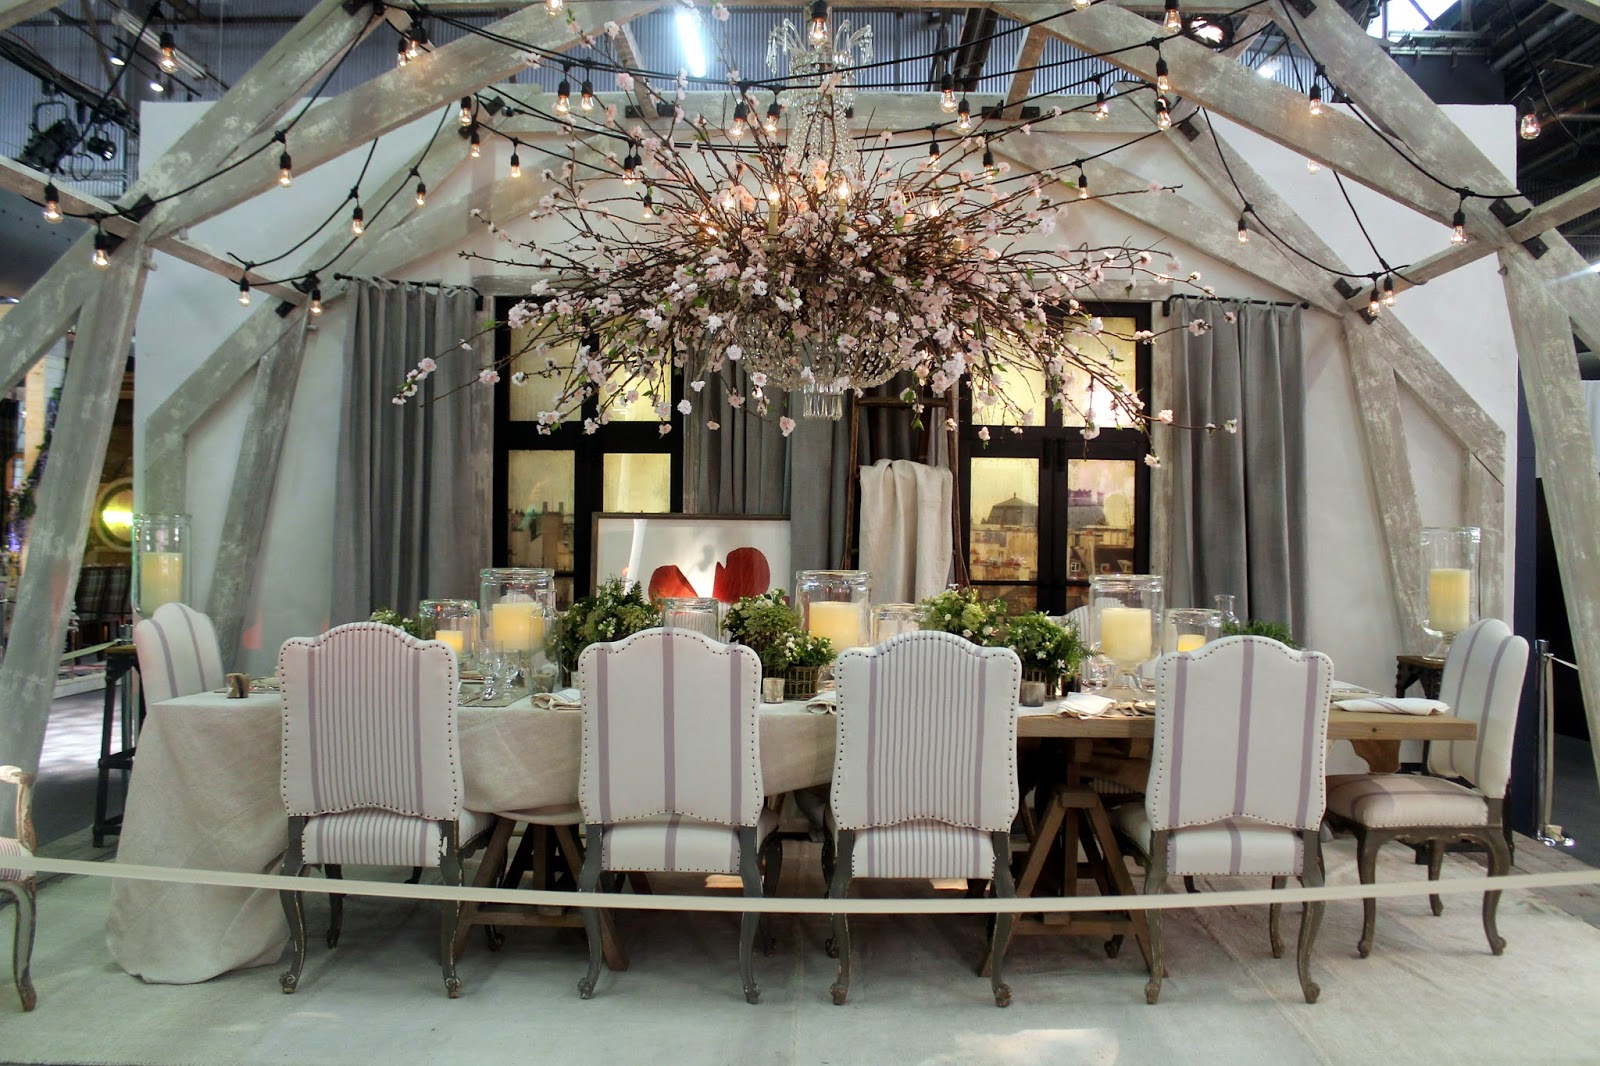 The Entertaining House: DIFFA, Dining by Design at the Architectural Digest Home Design Show